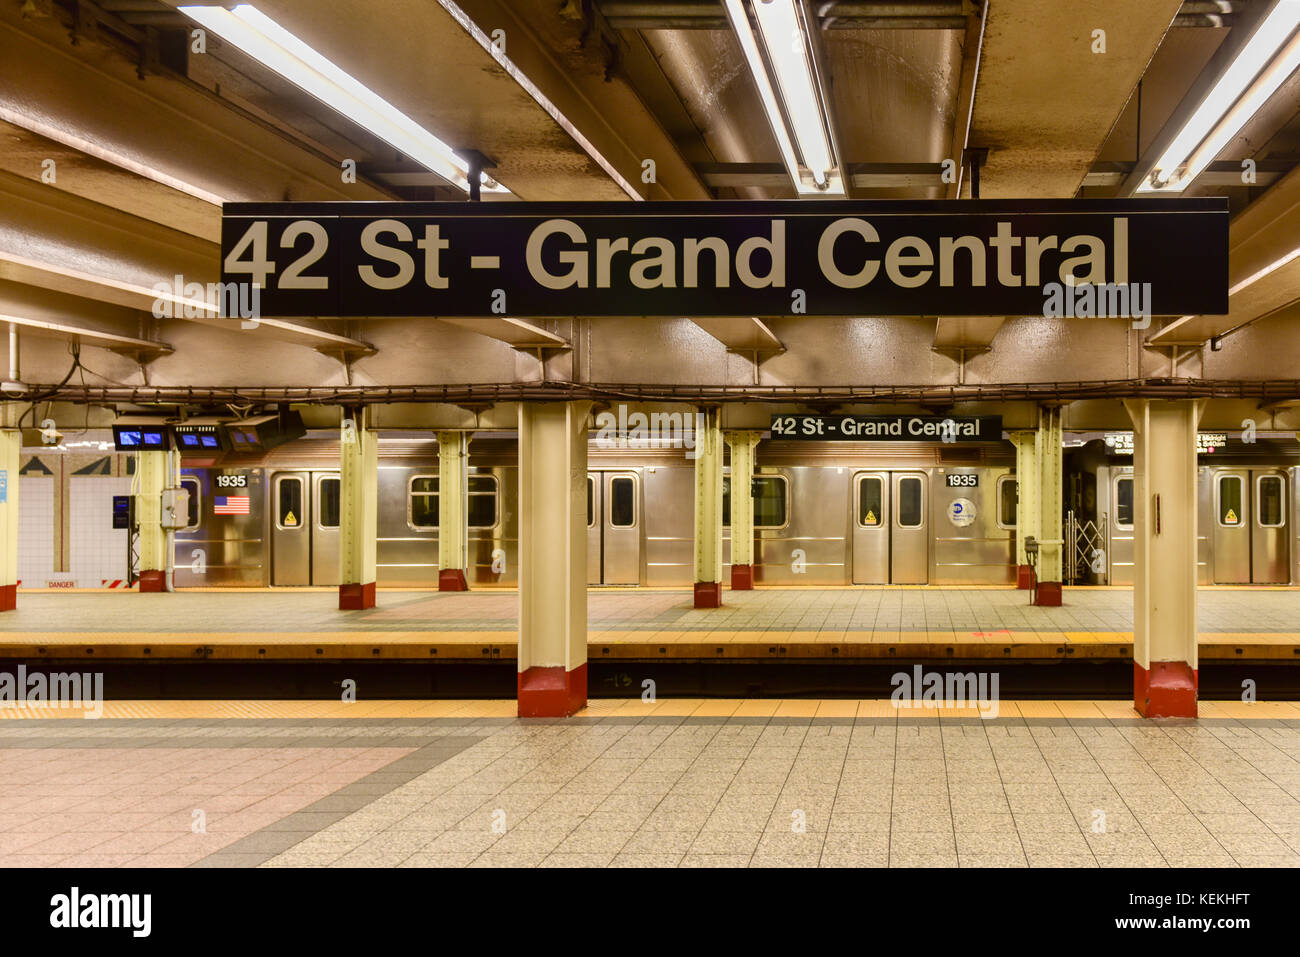 New York City - October 14, 2017: 42 St - Grand Central Subway Station in New York City. - Stock Image